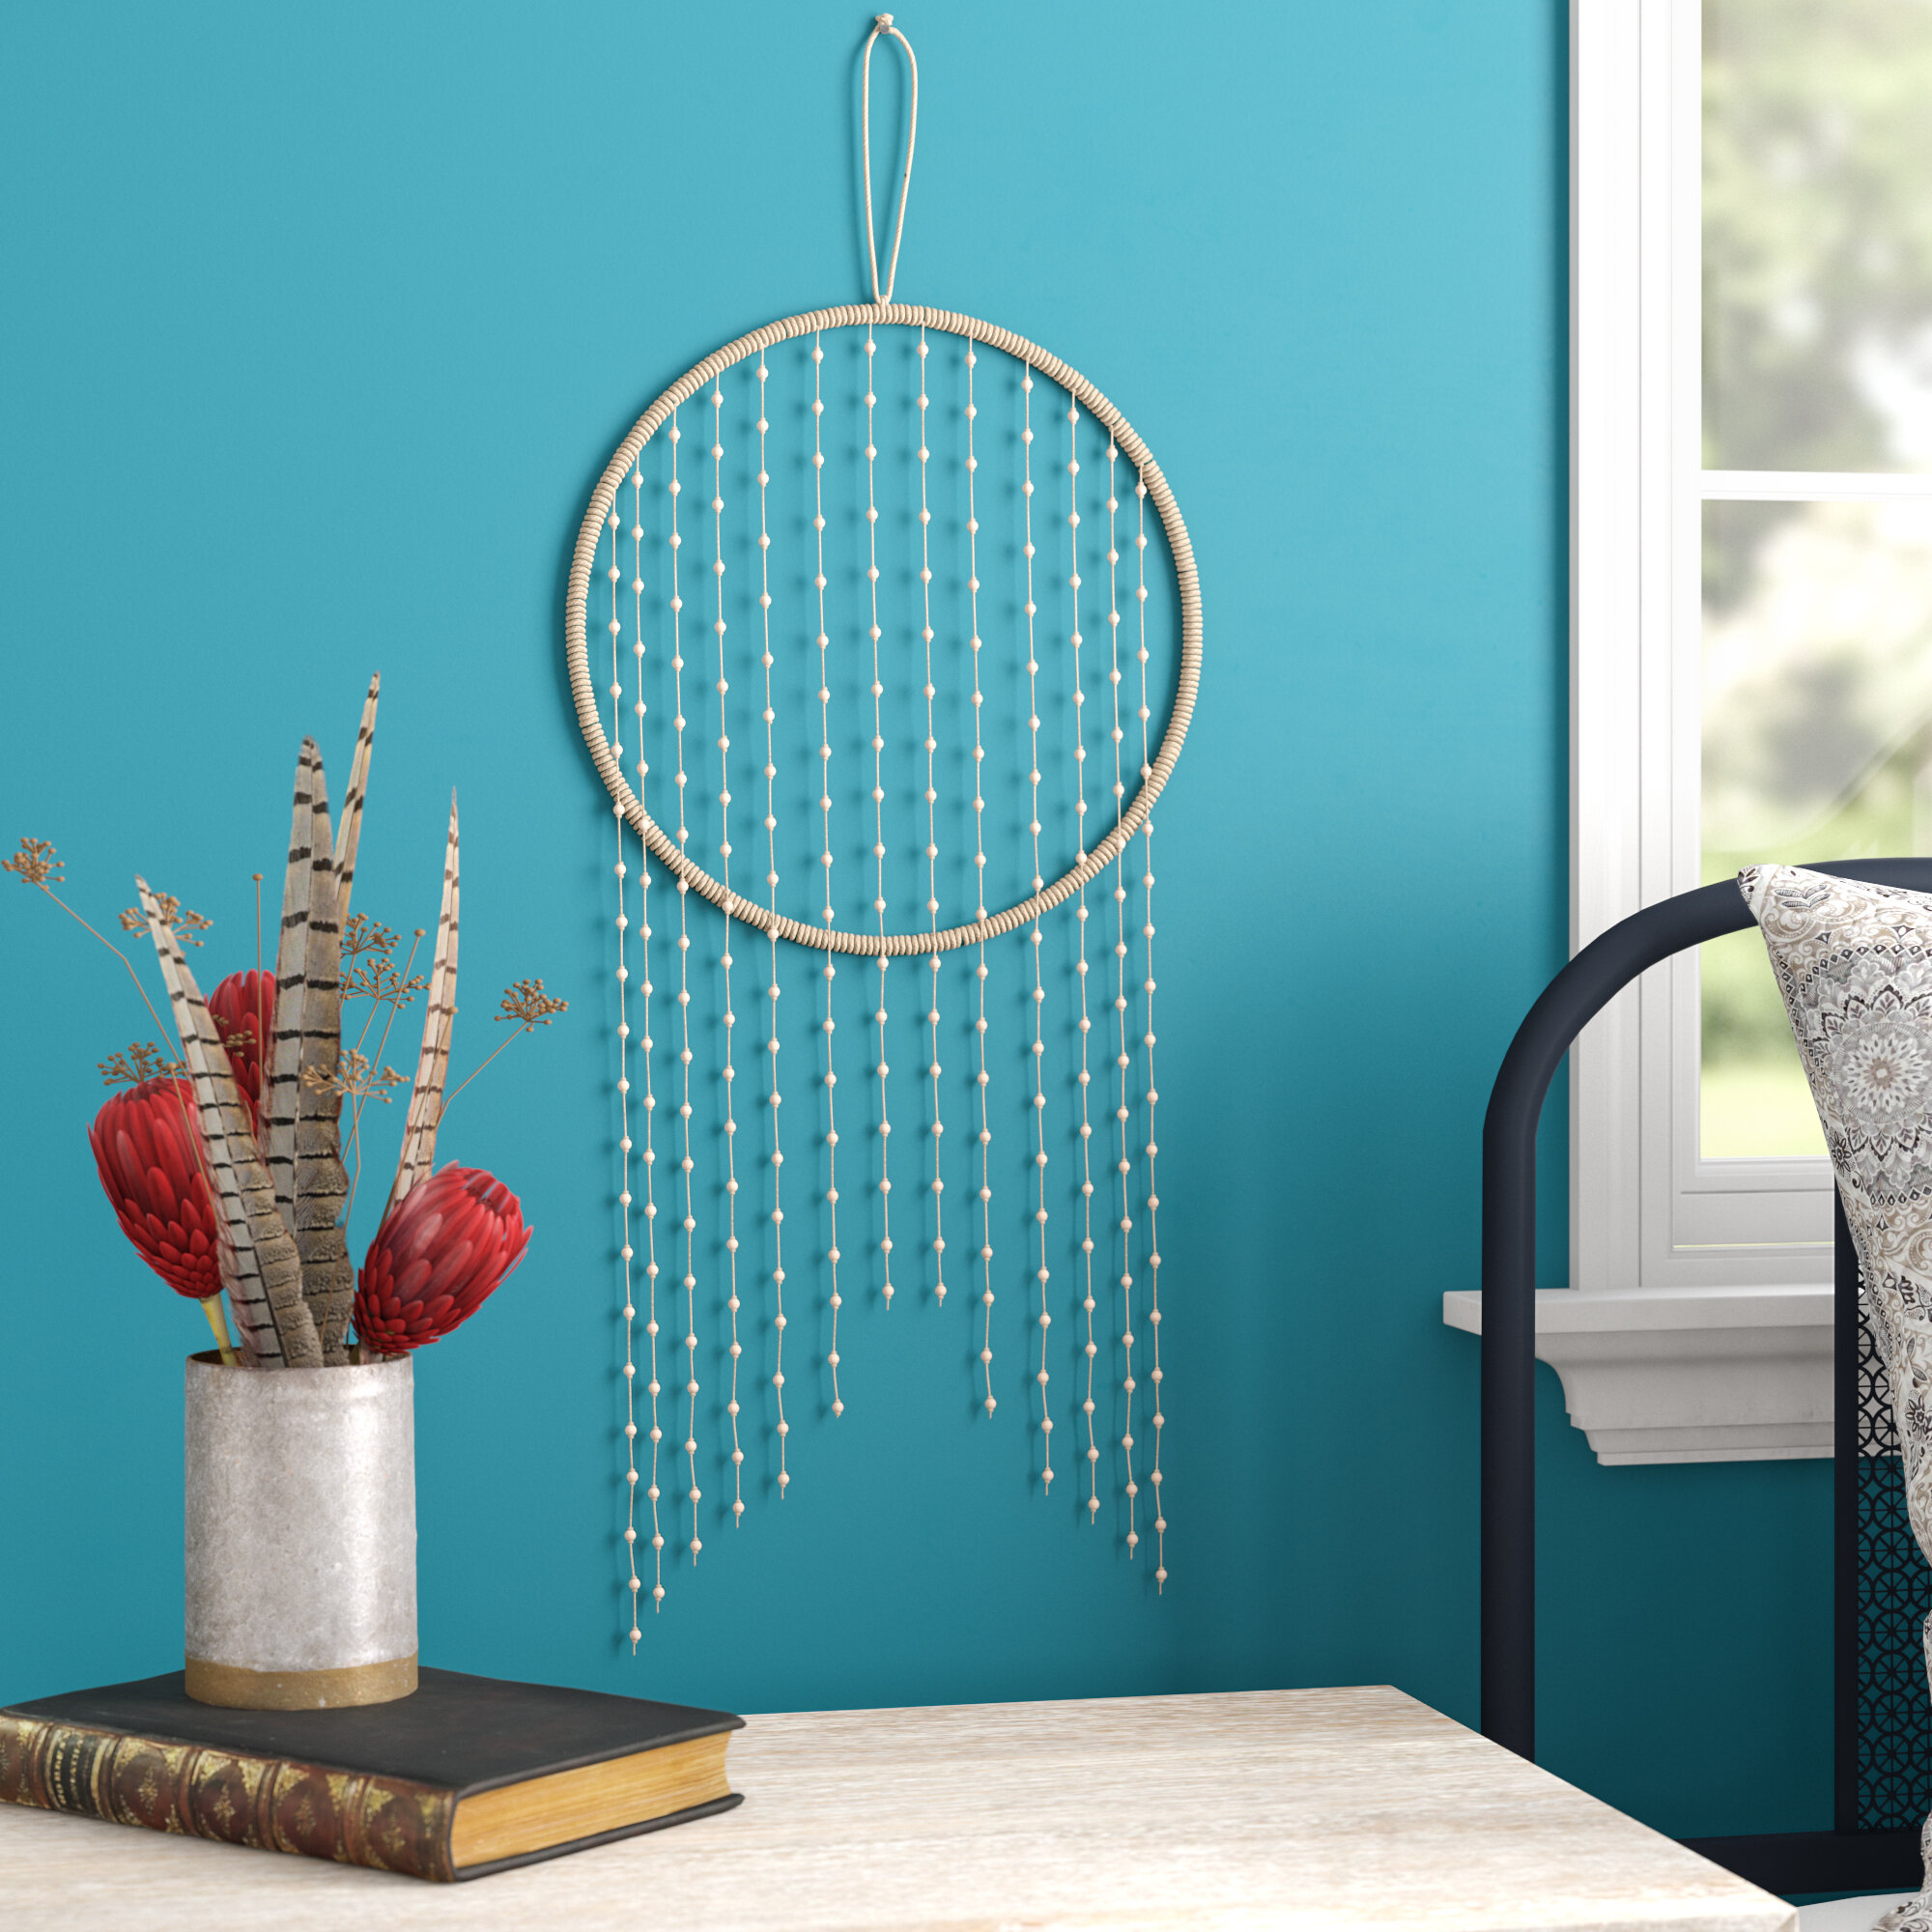 Tan Tapestries You'll Love In 2020 | Wayfair Pertaining To 2018 Blended Fabric Saber Wall Hangings With Rod (View 15 of 20)